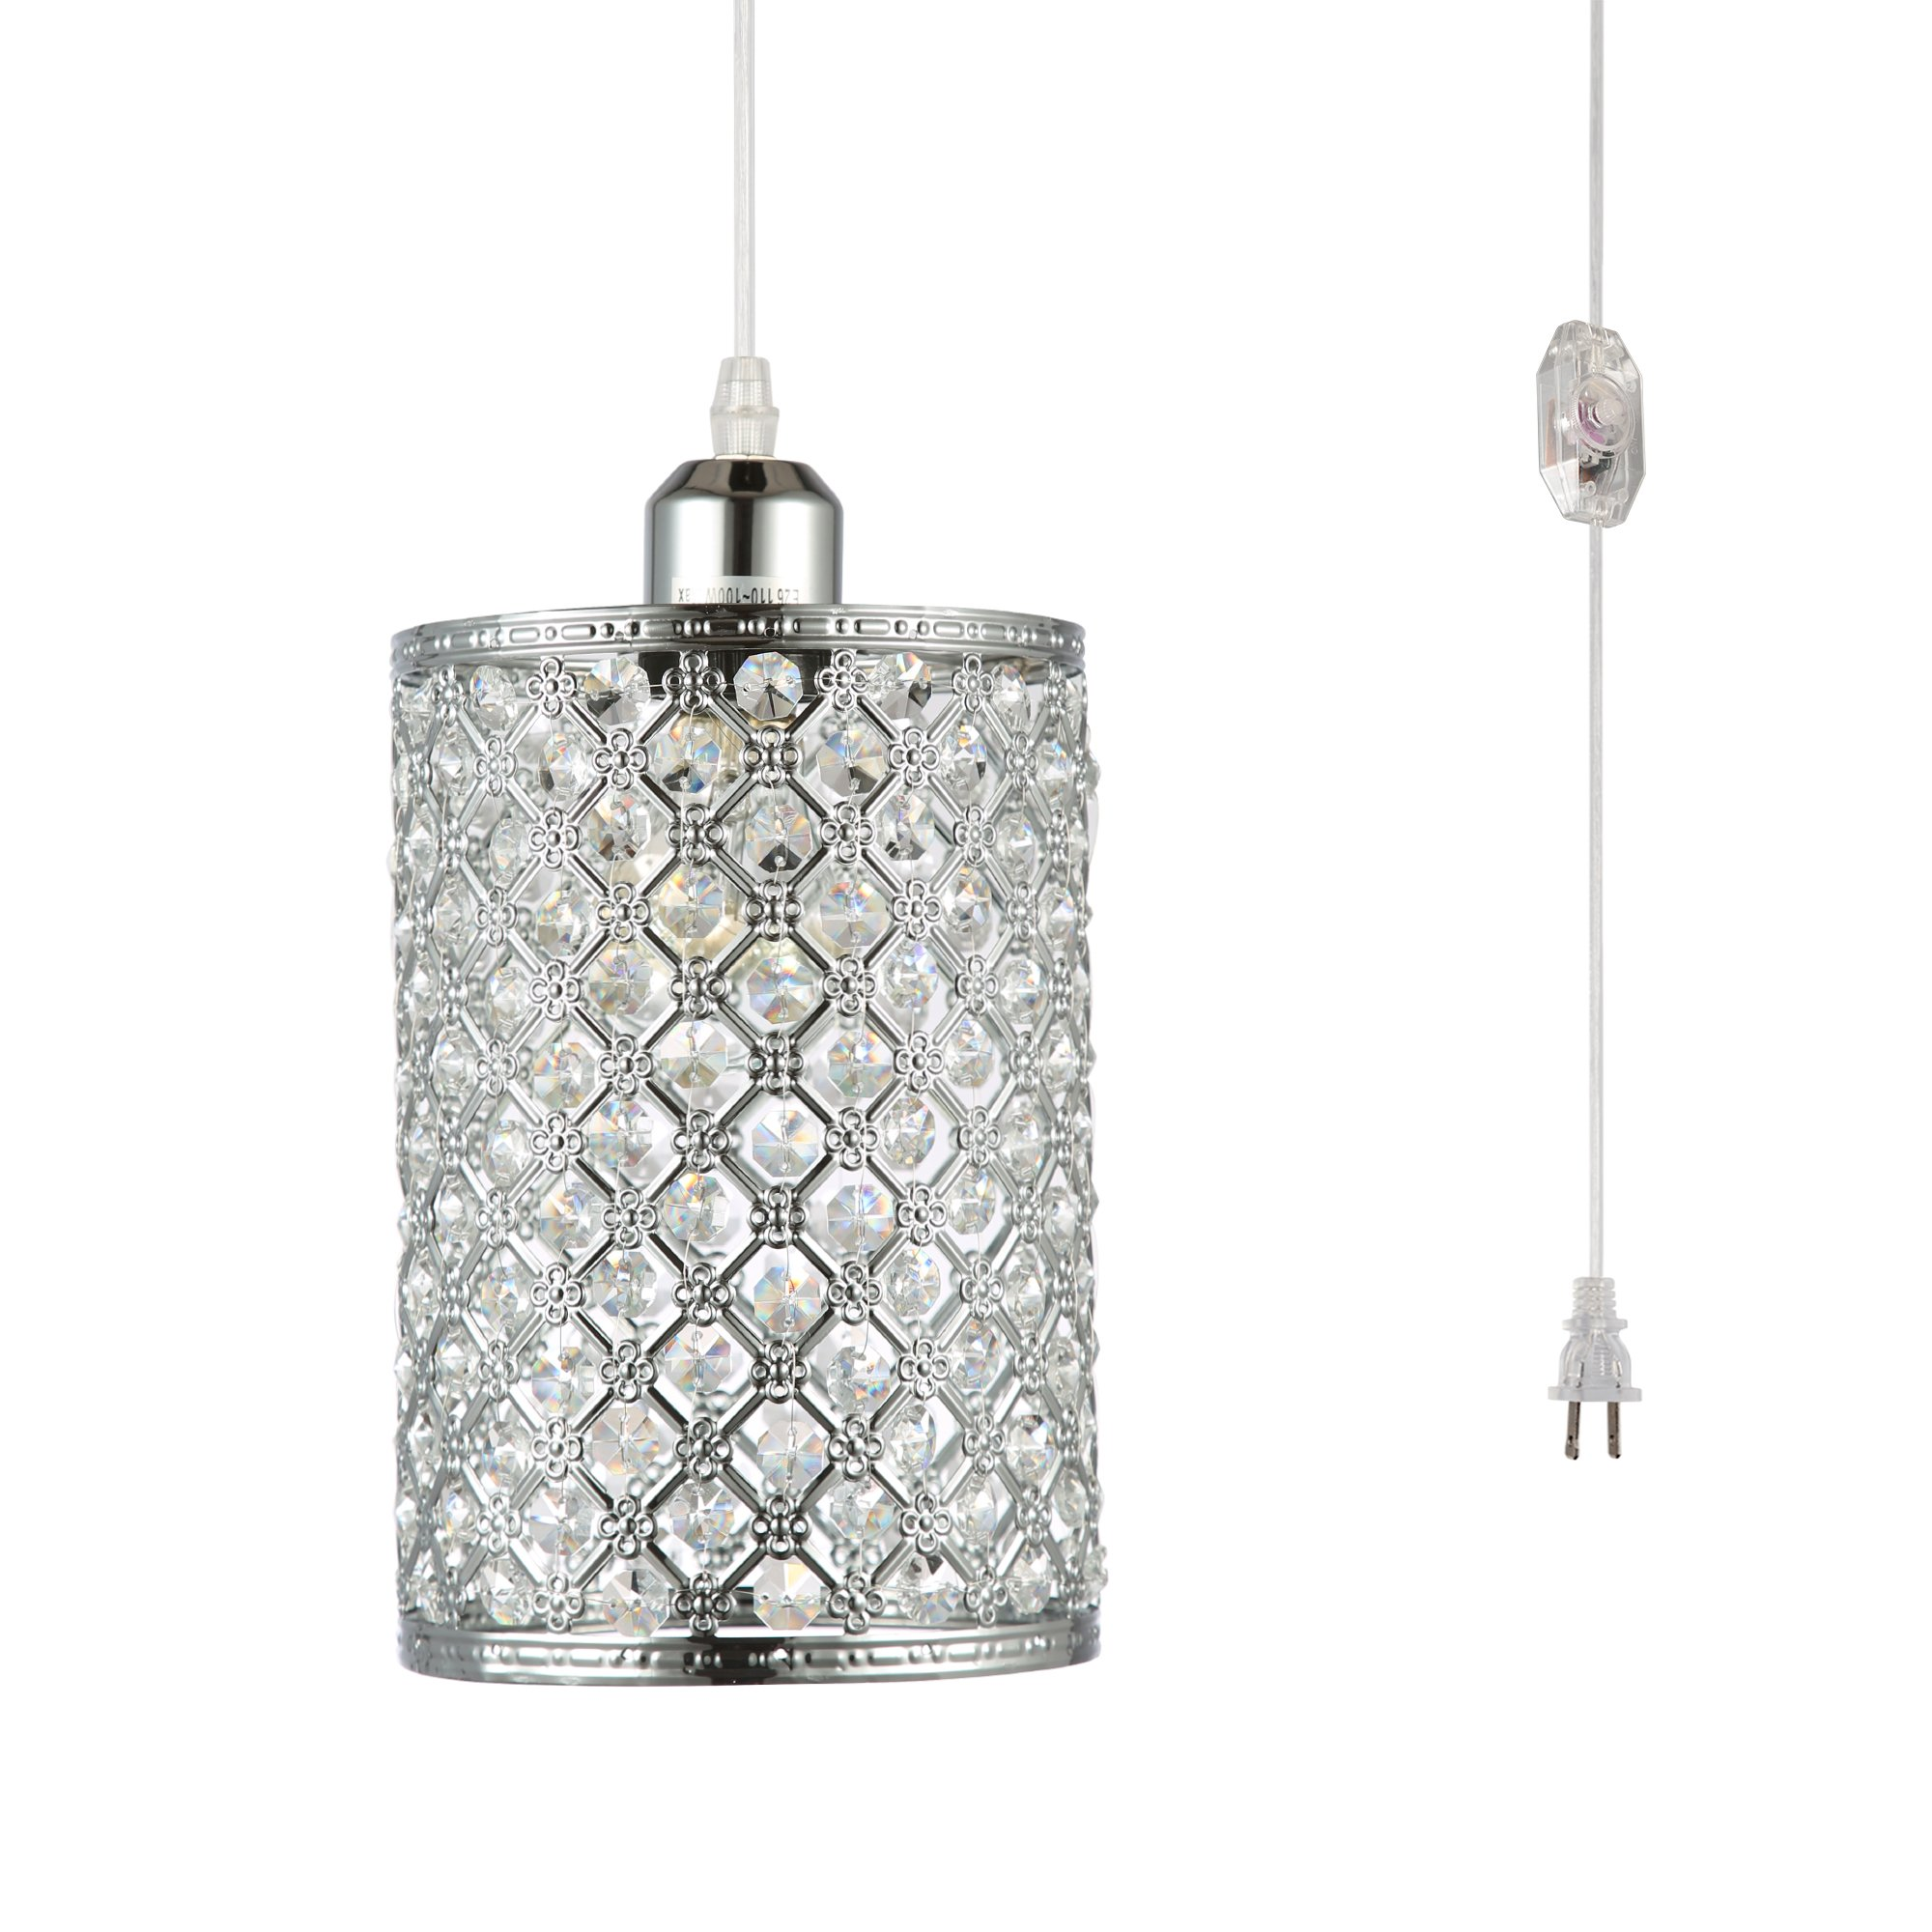 Plug in Chandelier Lighting, HMVPL Modern Crystal Pendant Lights with ON/Off Dimmer Switch and 16.4' Hanging Cord, Great Lamp for Bedroom, Dining Room and More by Creatoplus